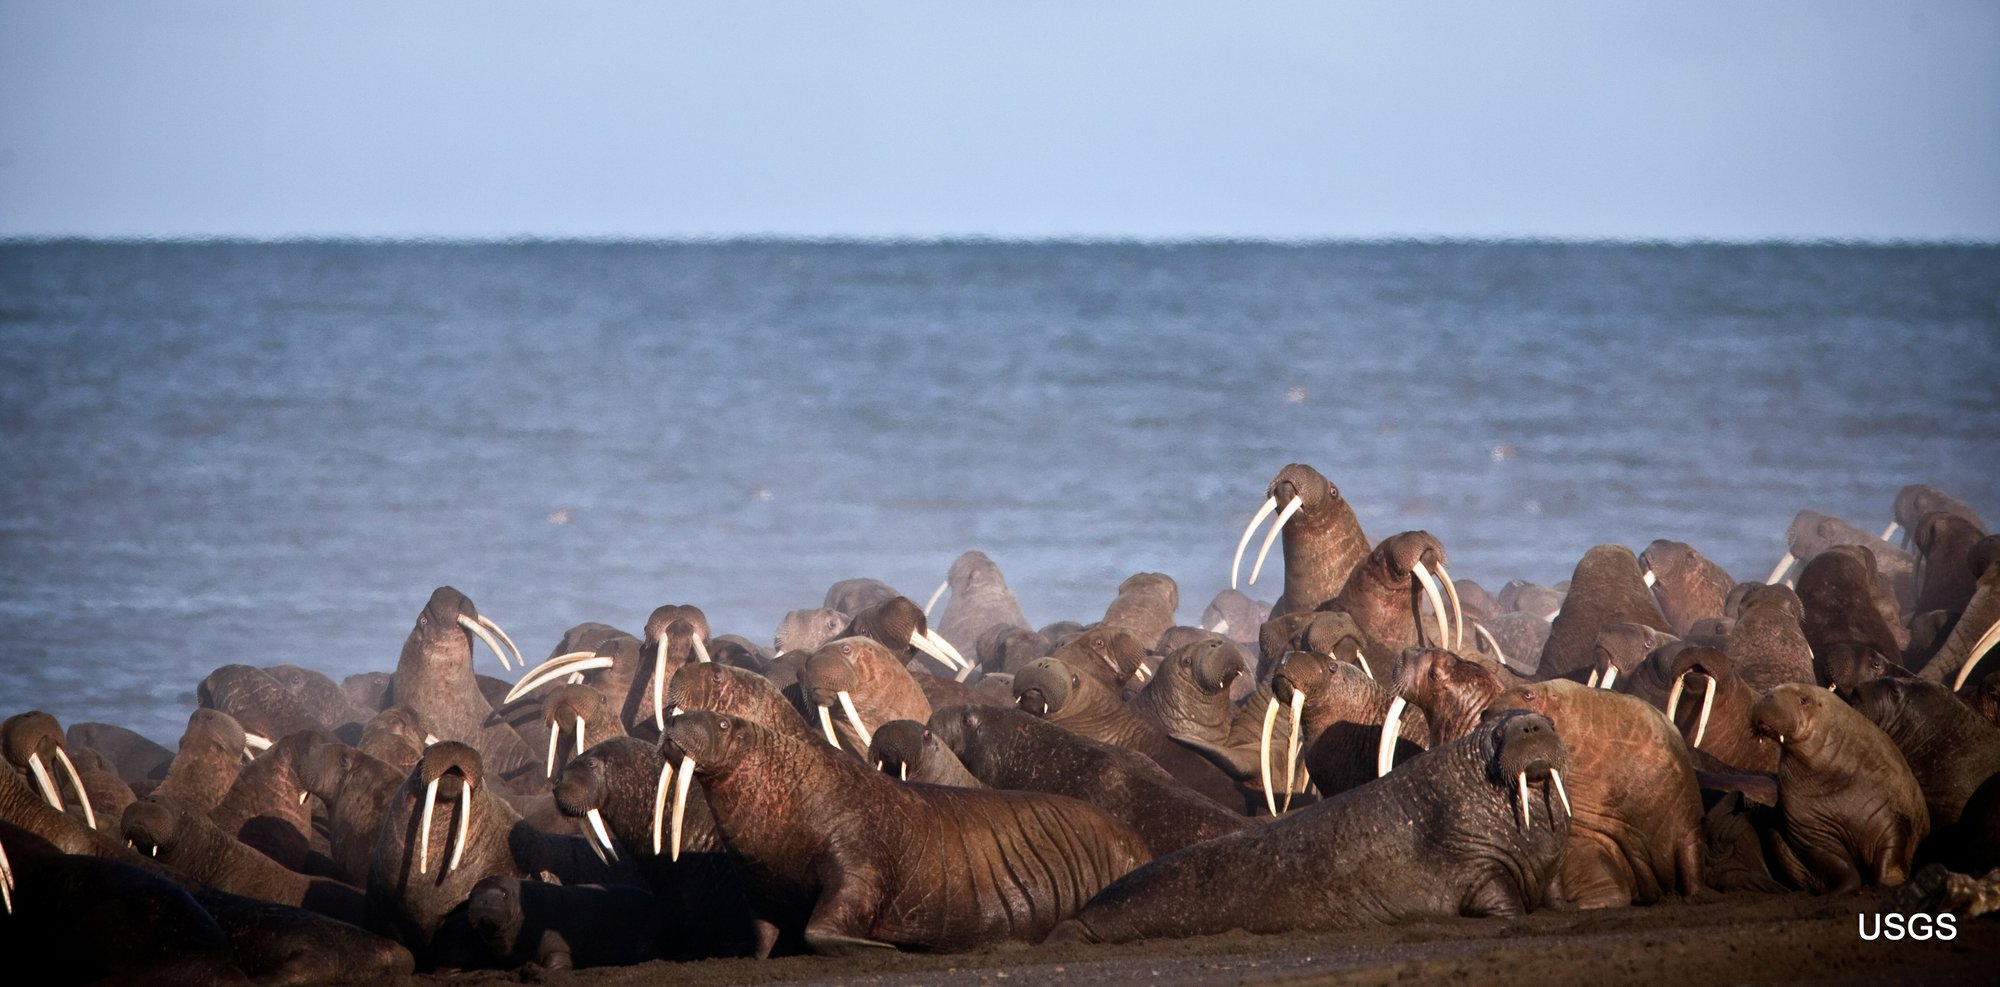 Walruses appear early on Alaska shore as sea ice recedes